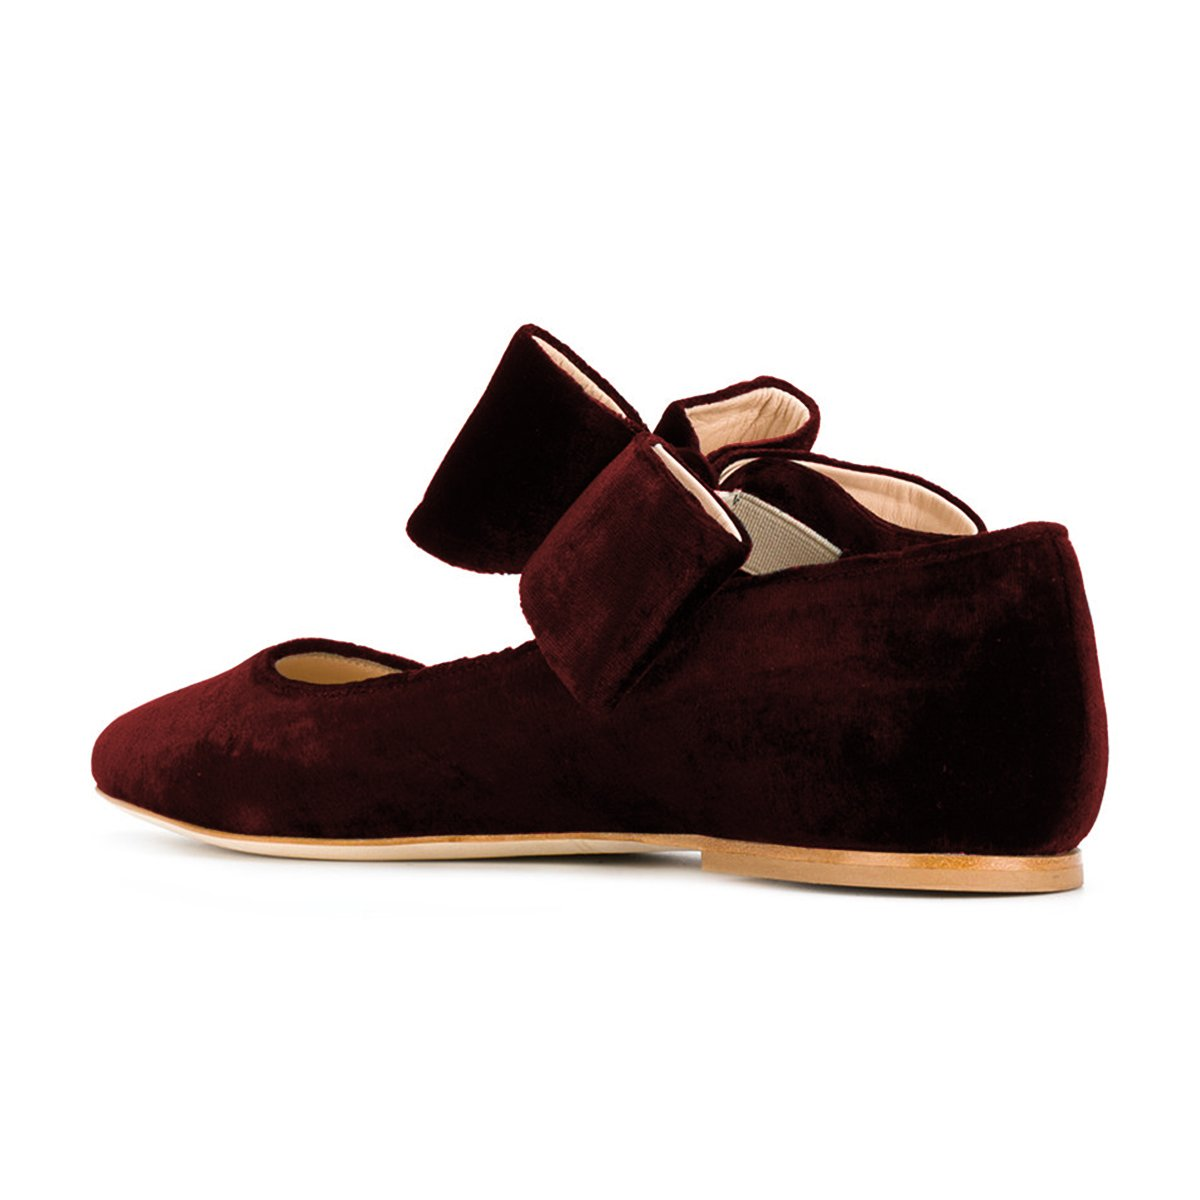 FSJ Women Cute Pointed Toe Flats With Bowknot Velvet Low Shoes Heels Slip On Comfy Shoes Low Size 4-15 US B076Q8R3HV 10 B(M) US|Wine 433030